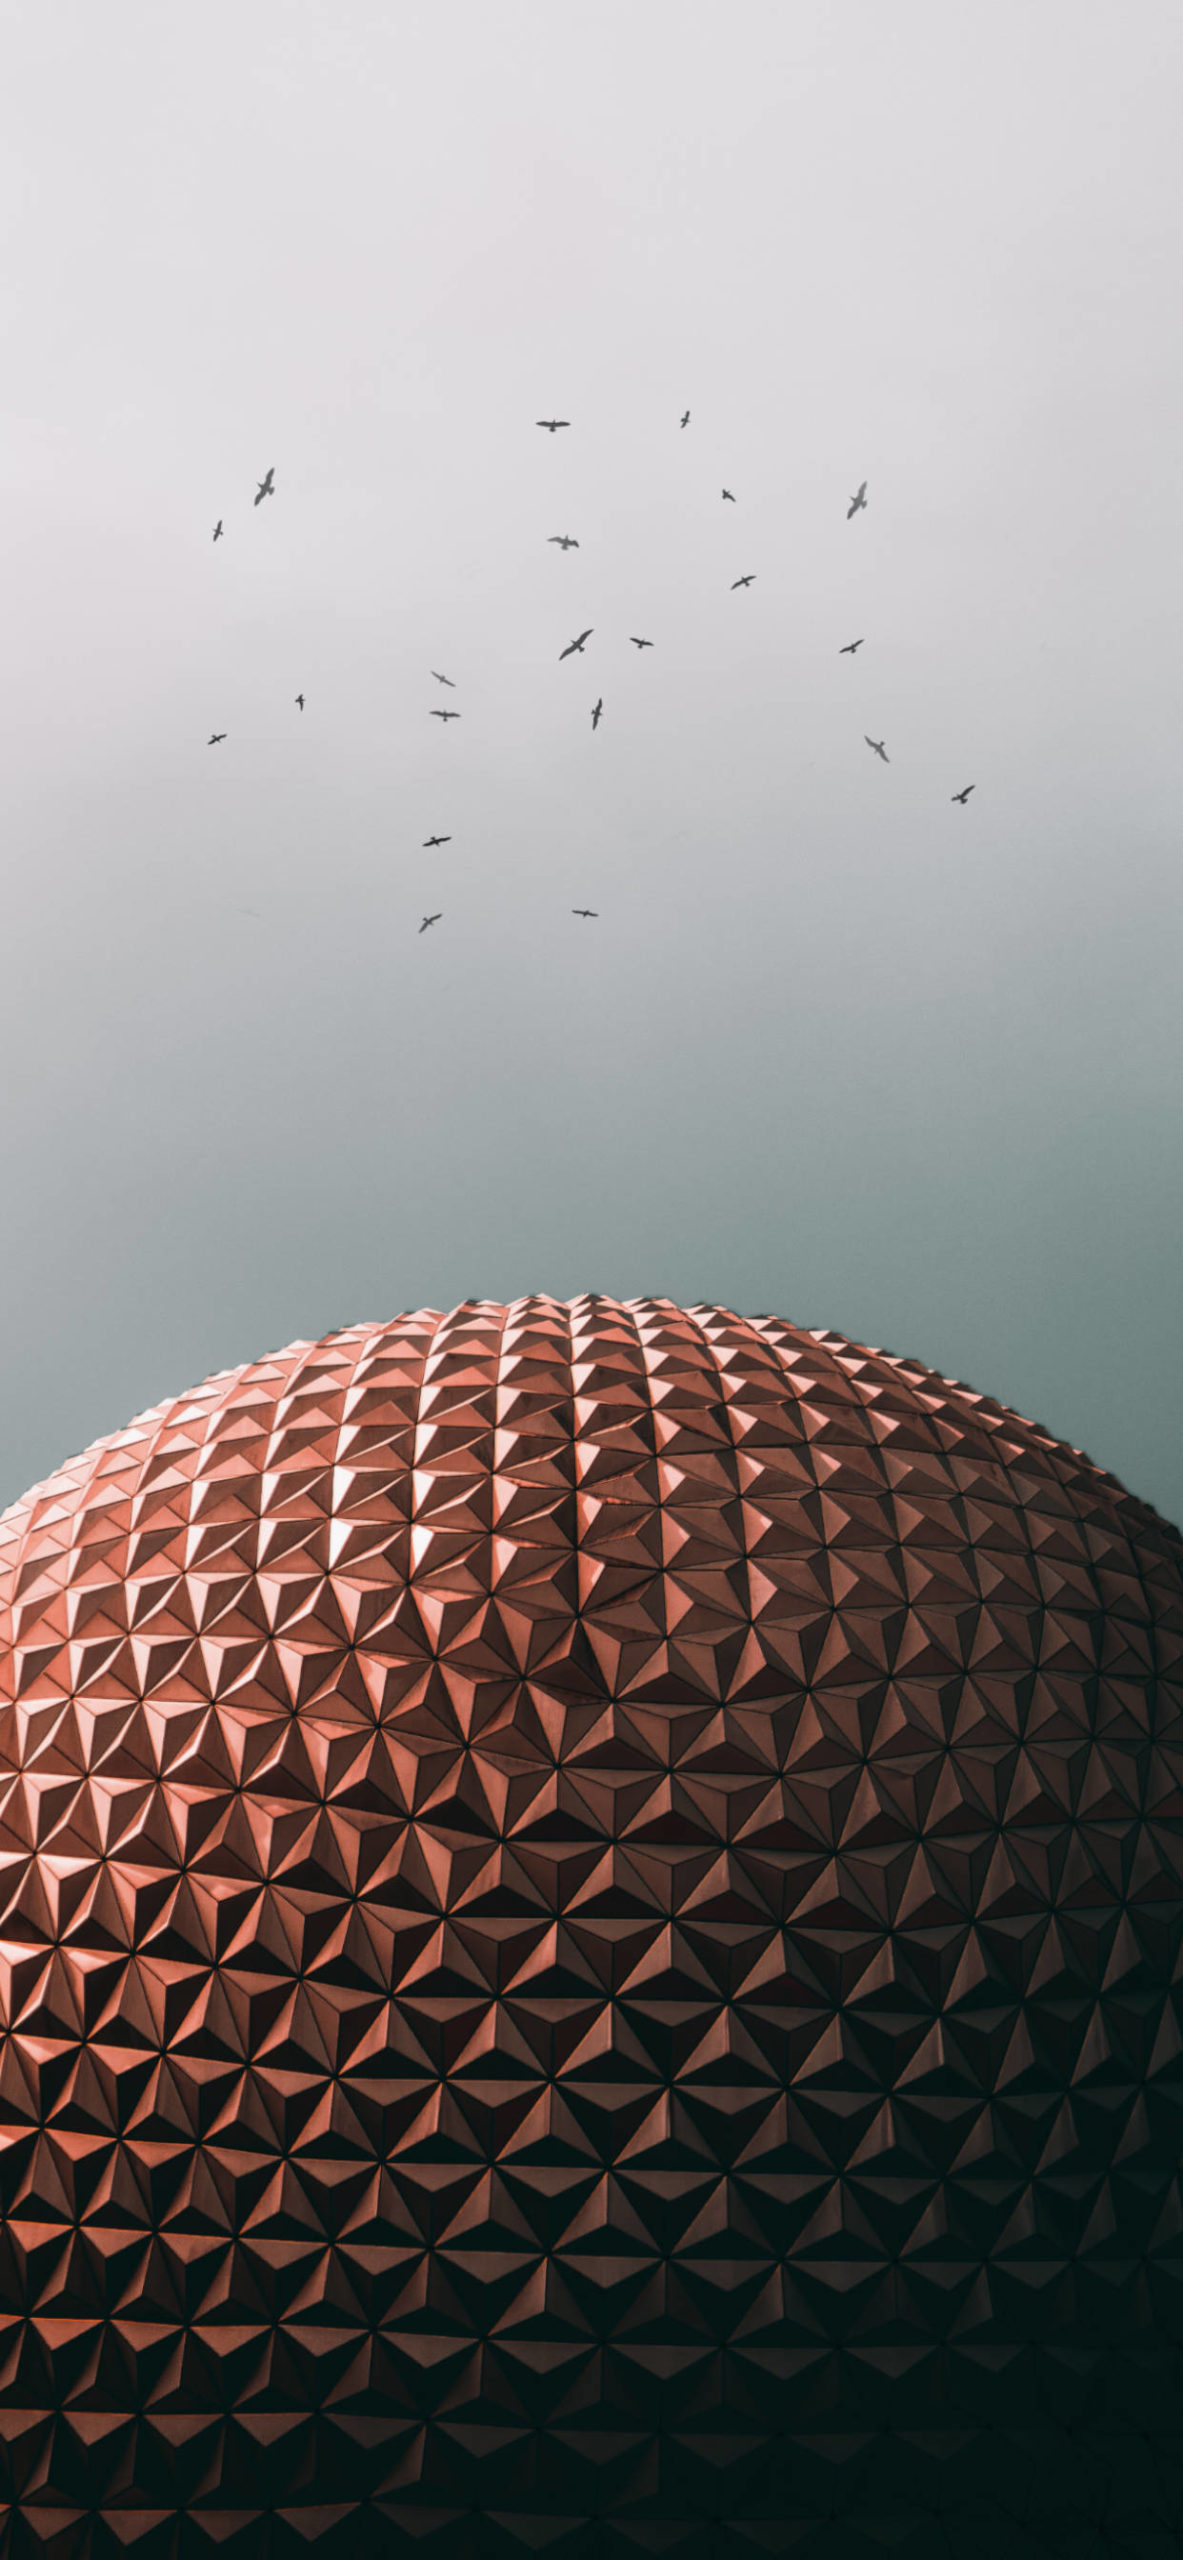 iPhone wallpapers architecture disney world orlando scaled Architecture